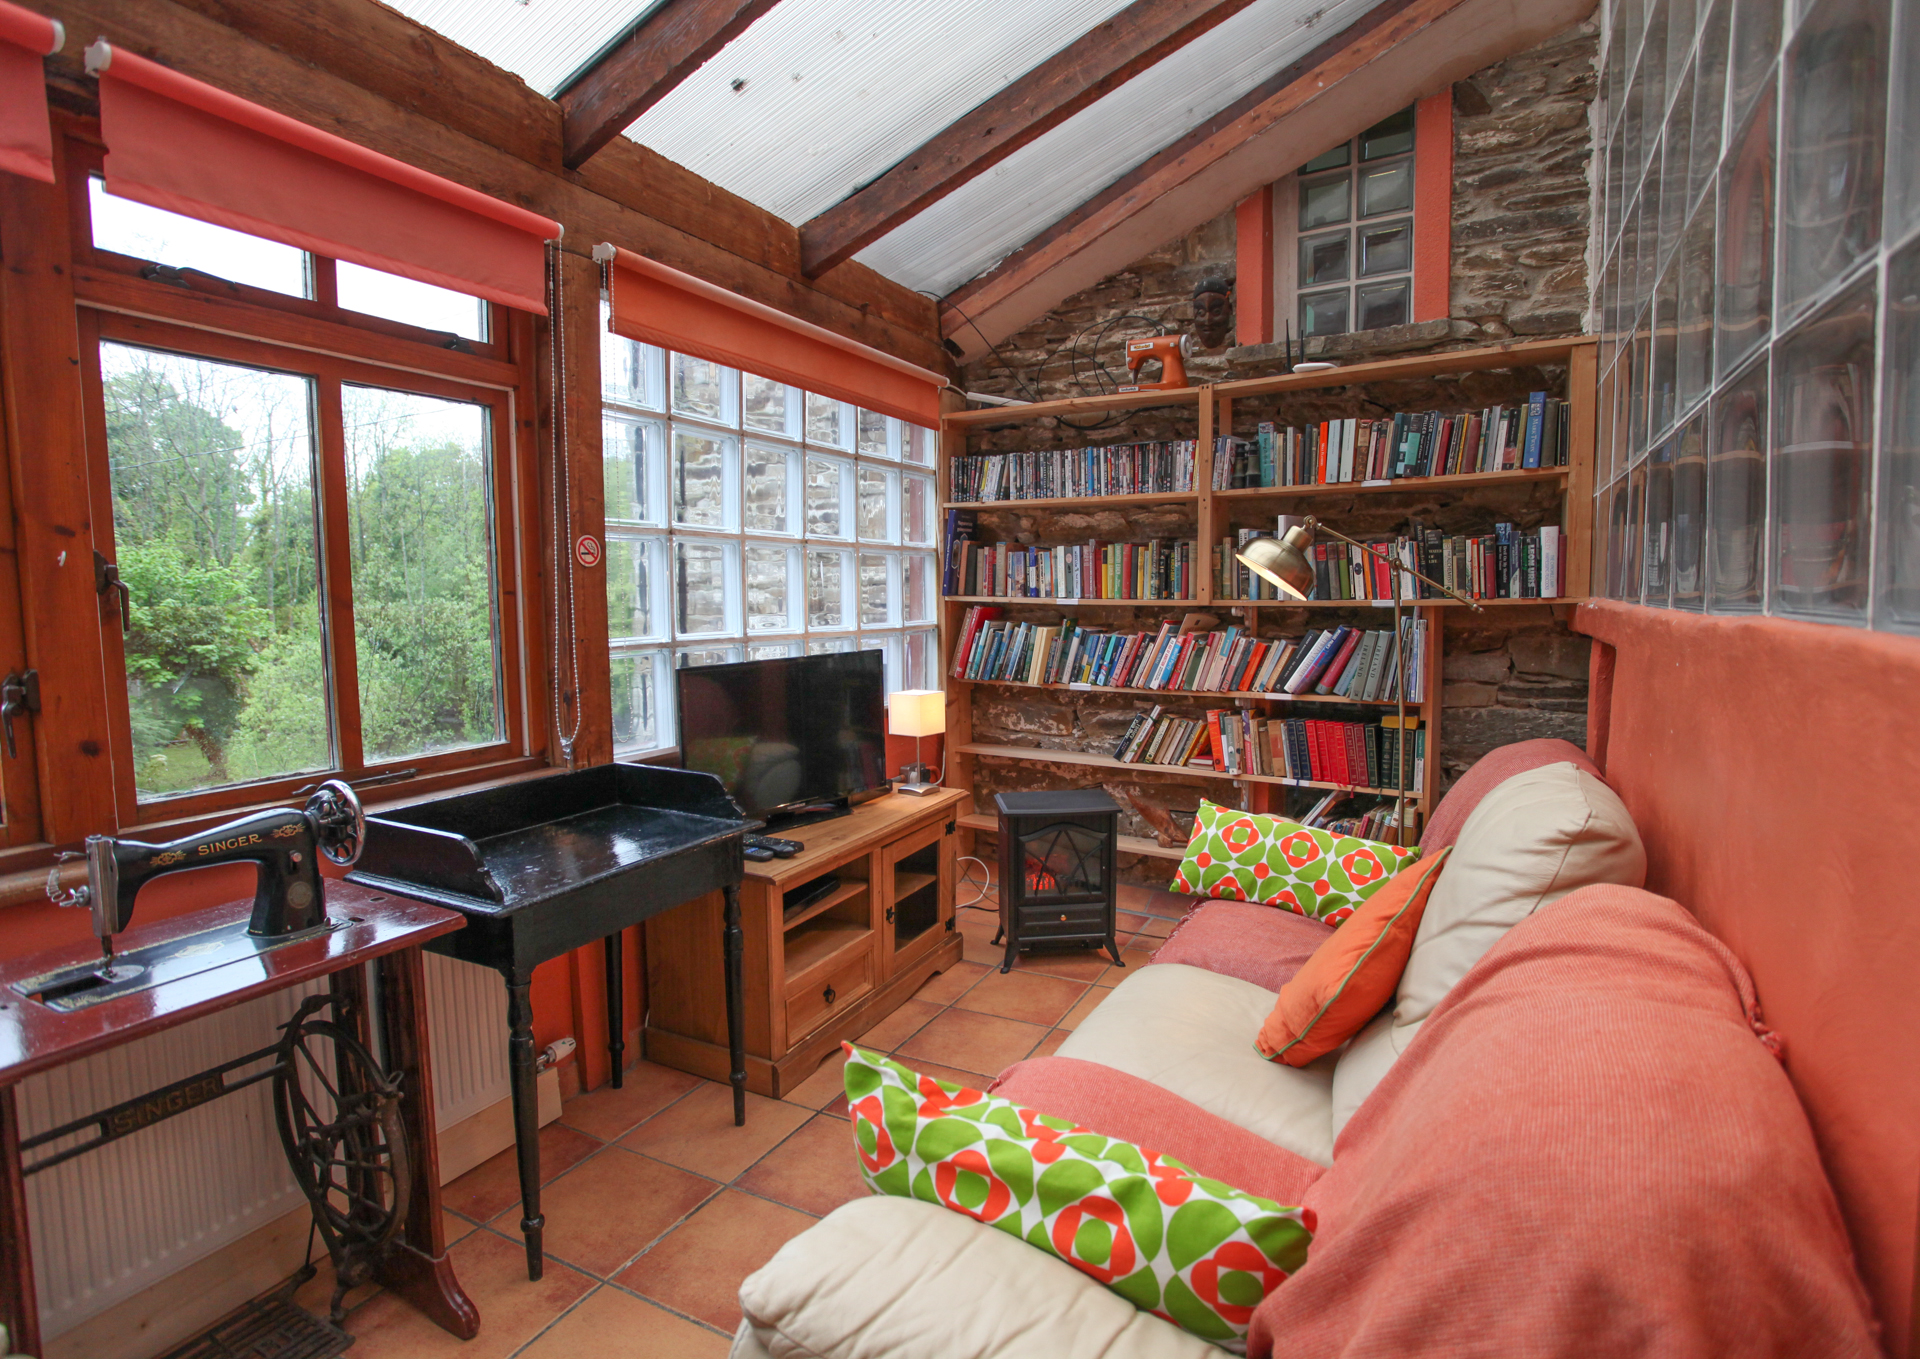 Moville Boutique Hostel - Library